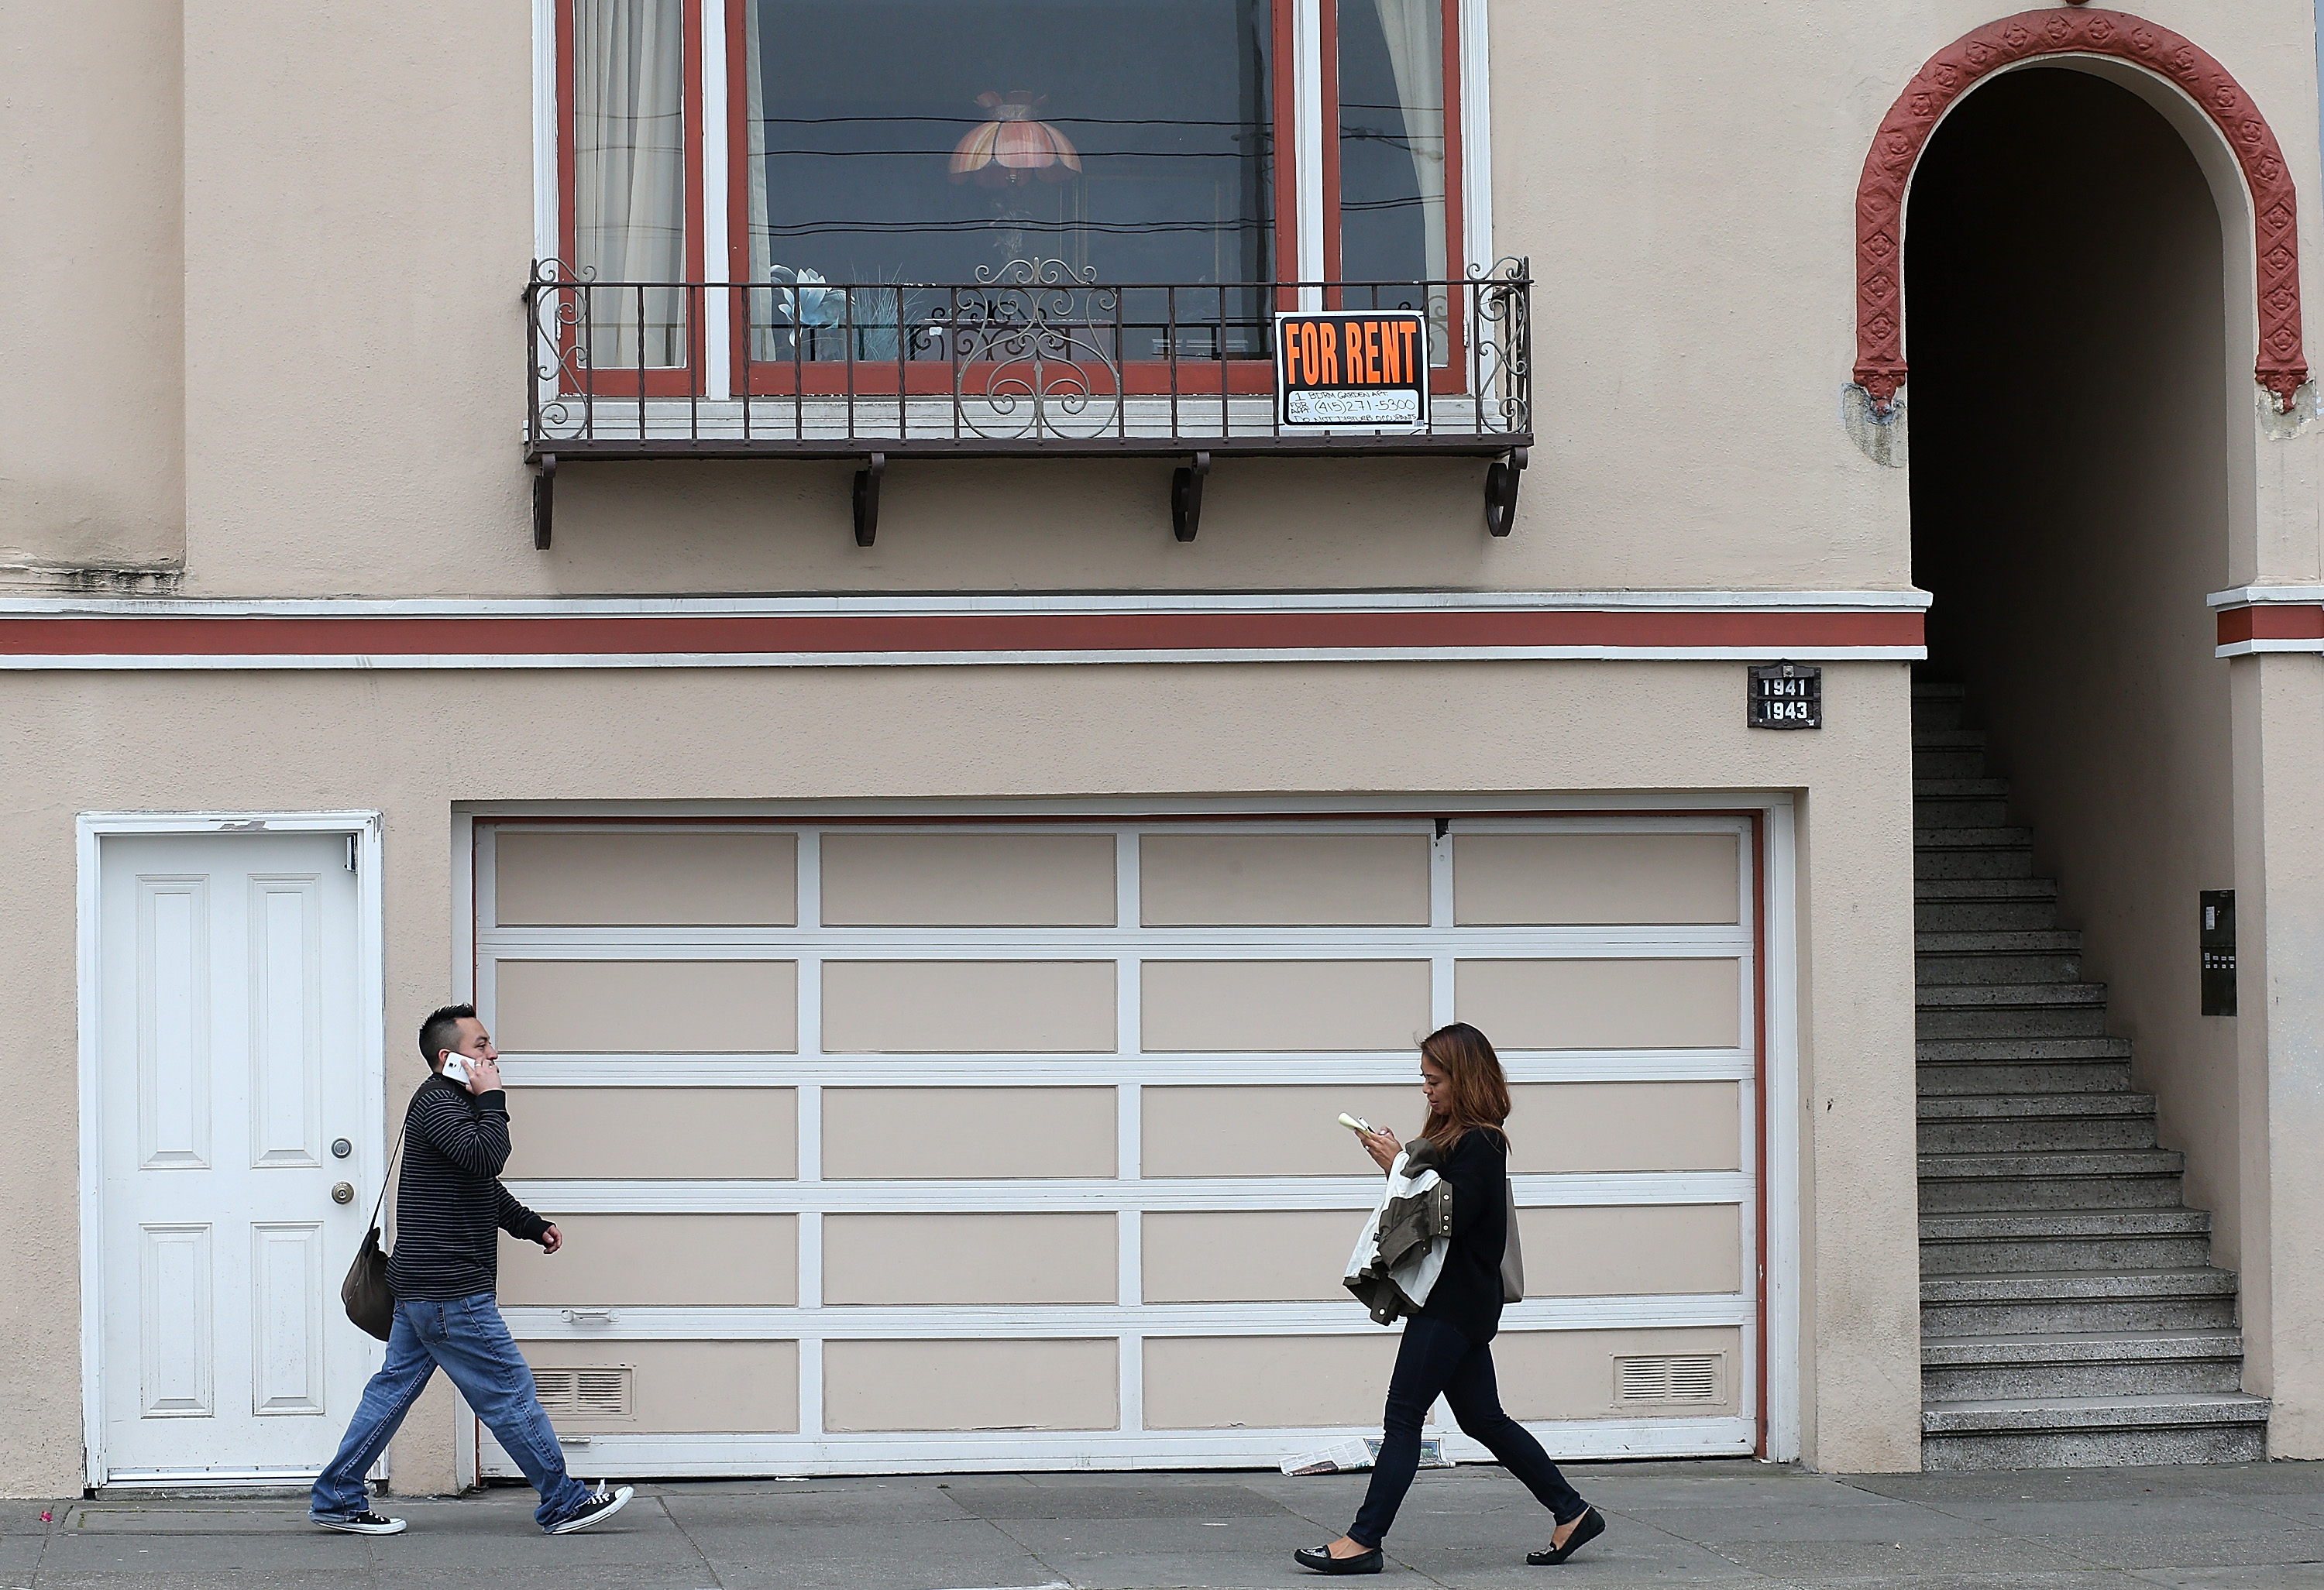 San Francisco Area Leads Nation In High Rents